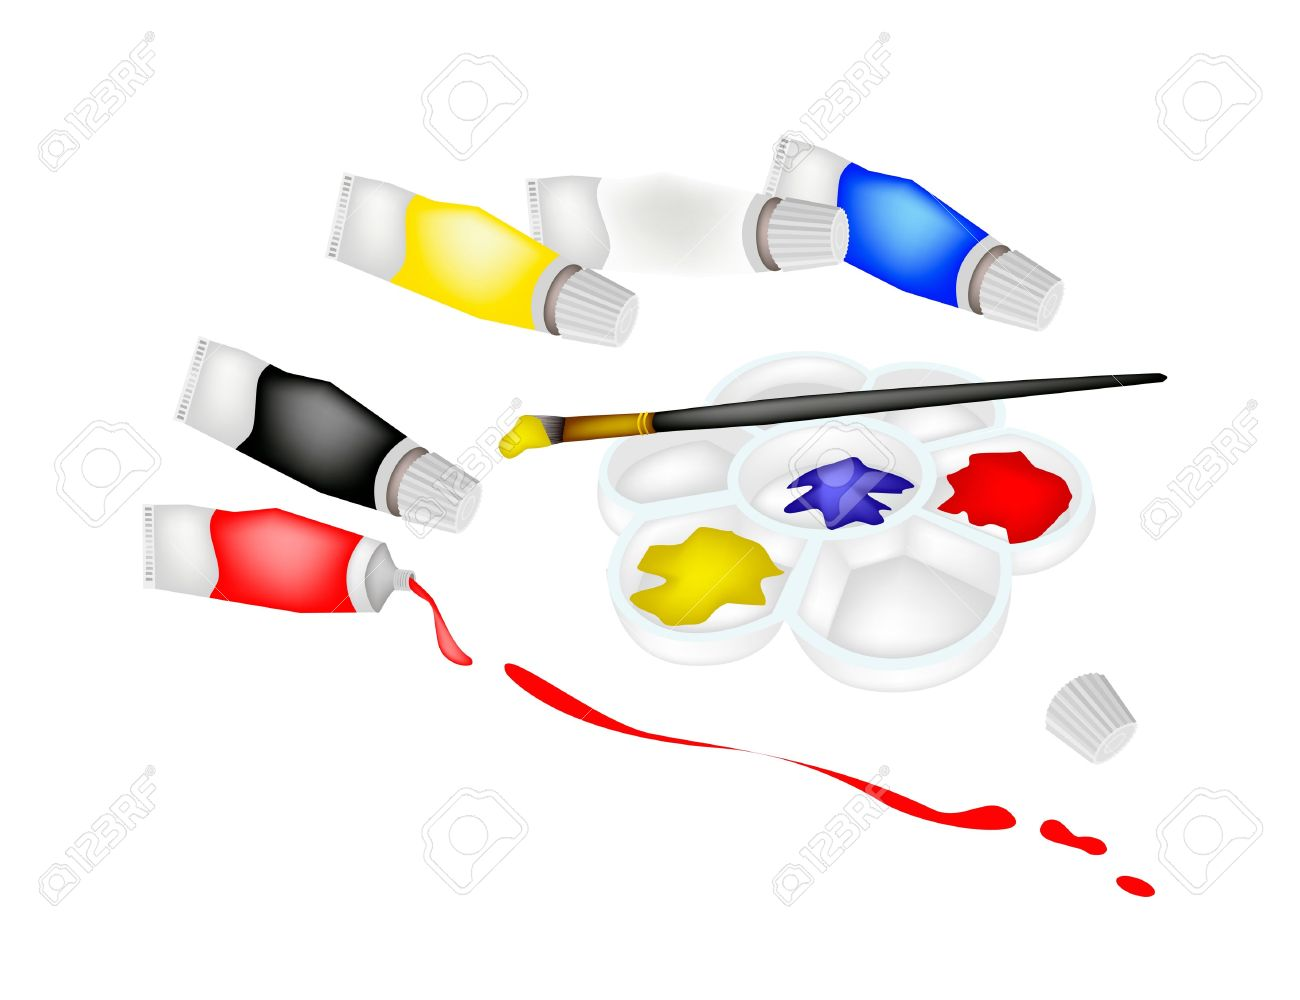 Paint Tubes And Plastic Art Palette With A Craft Paintbrushes.